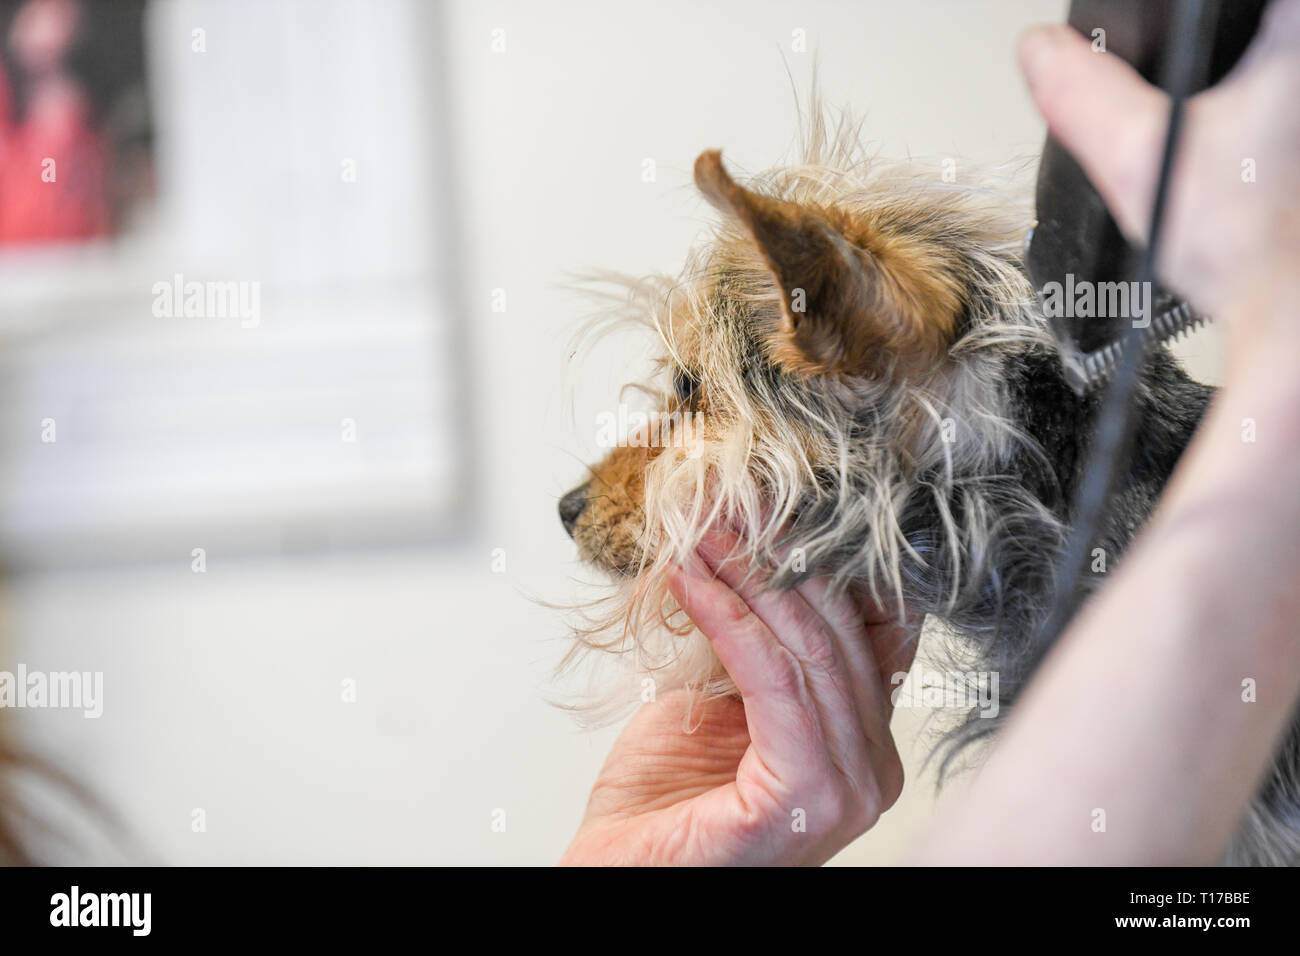 Dog grooming close up of a calm Yorkshire terrier being groomed with scissors small dog getting trimmed - Stock Image